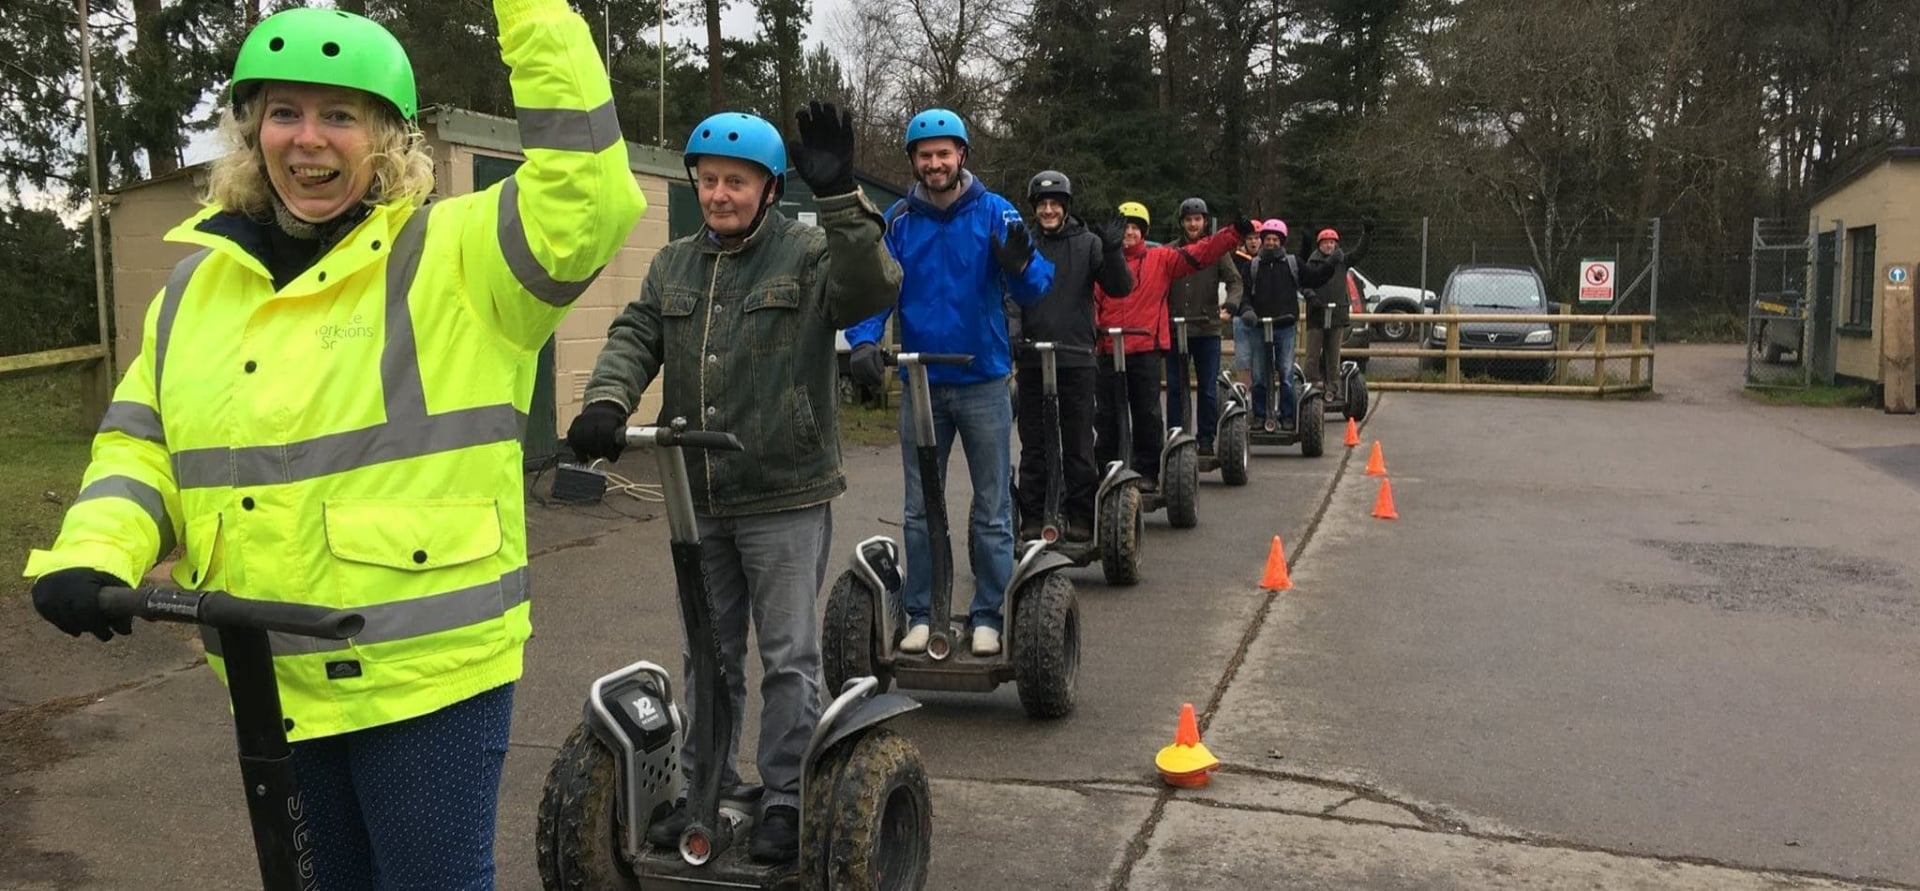 Segway Riding Experience in Devon-3